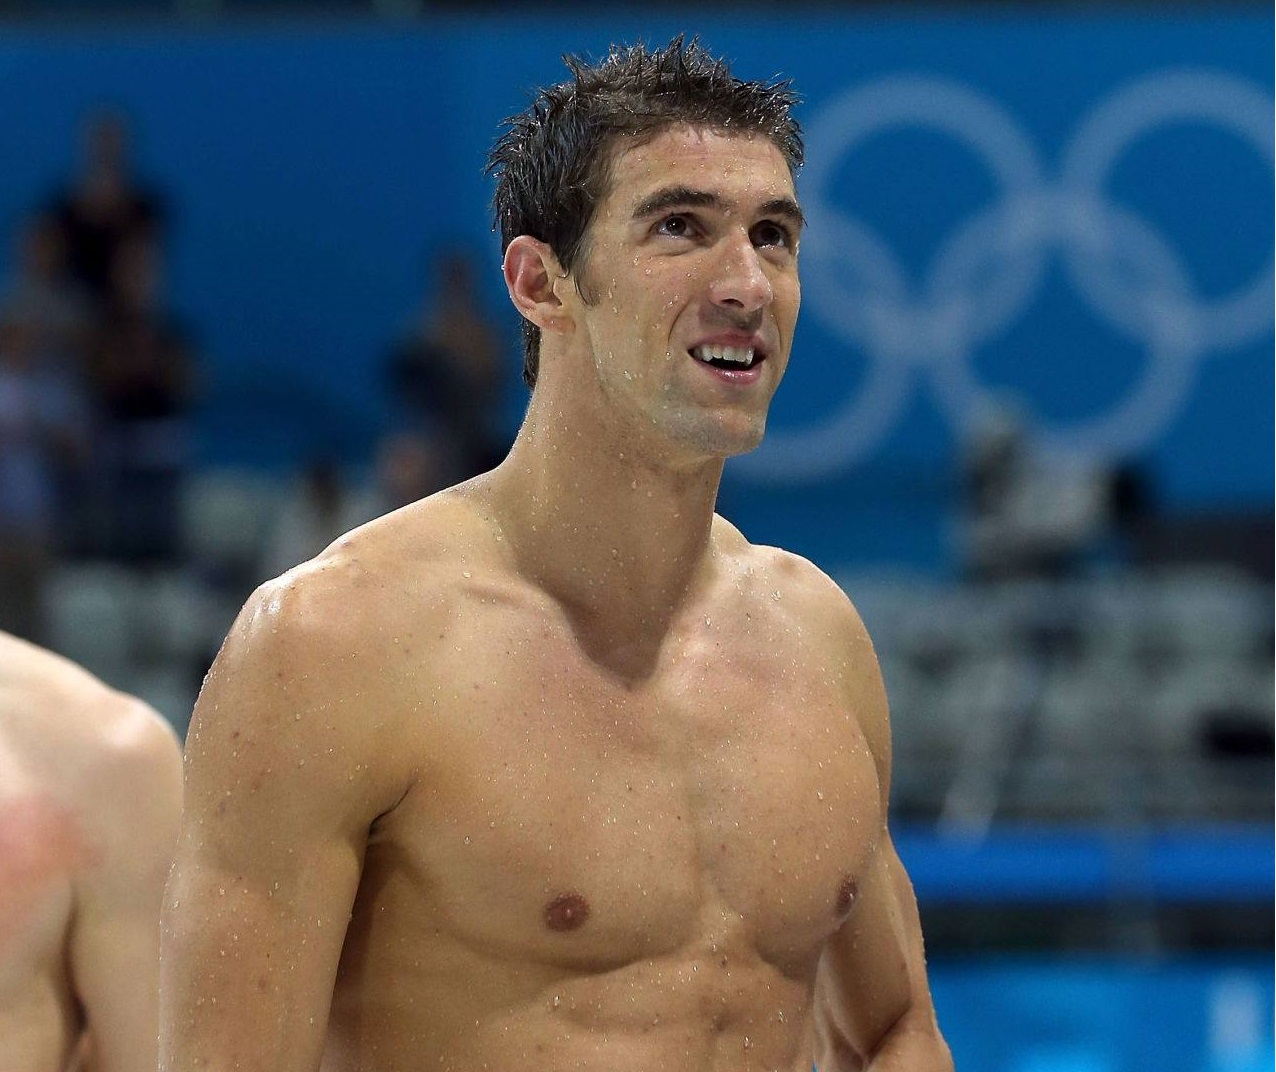 Arizona Gold Swimming: ASU Swimming: Michael Phelps To Become Assistant Coach